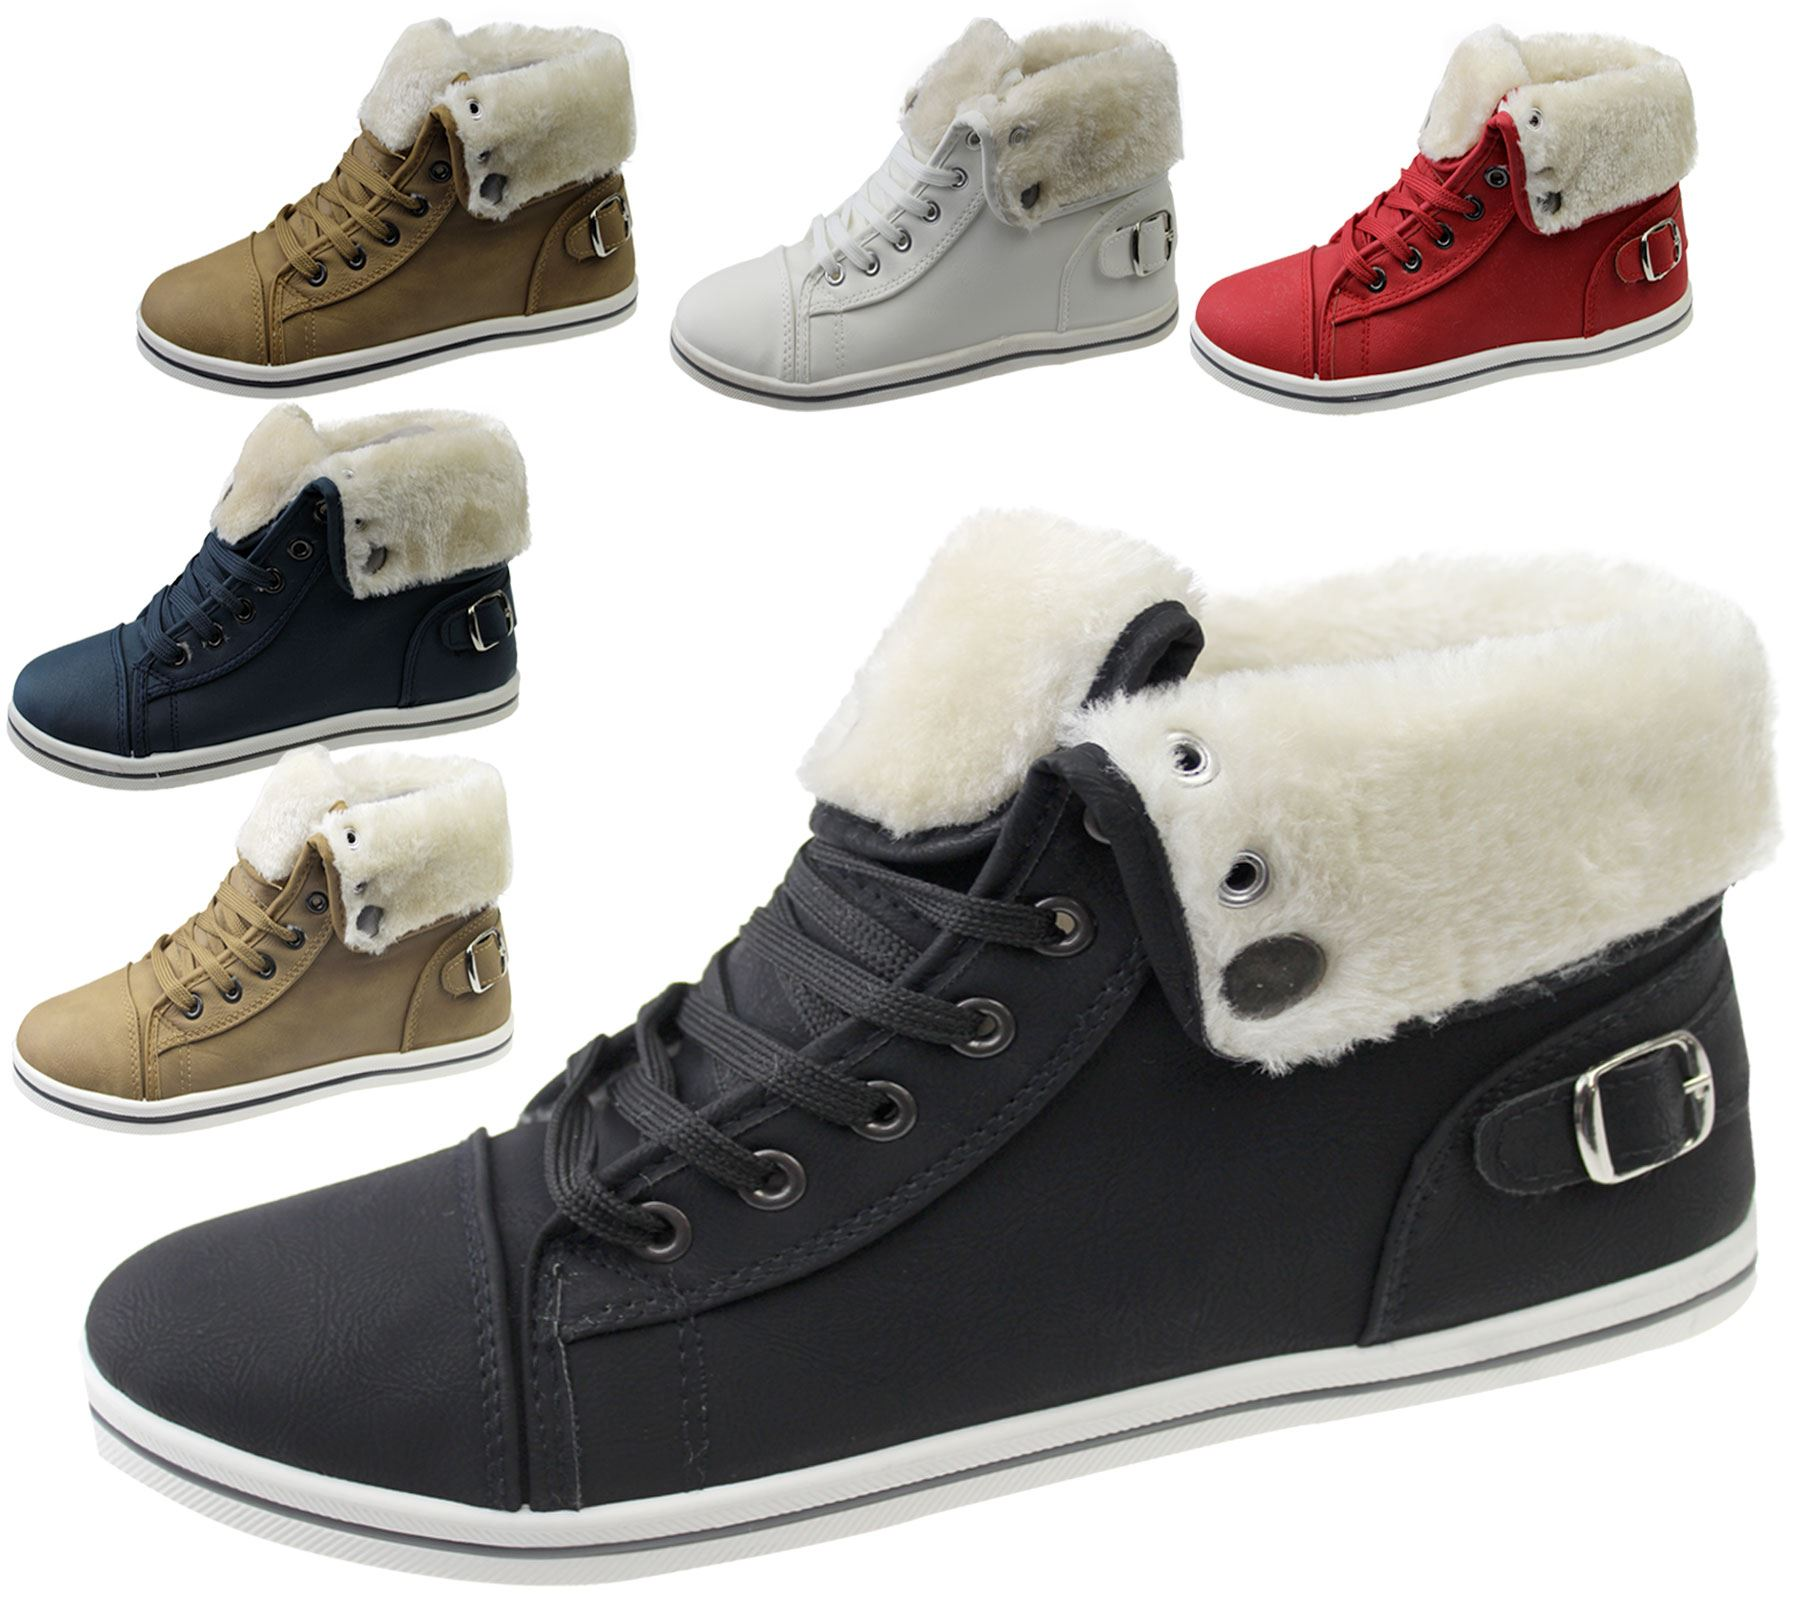 Girls-Boots-Womens-Warm-Lined-High-Top-Ankle-Trainer-Ladies-Winter-Shoes-Size miniatura 79